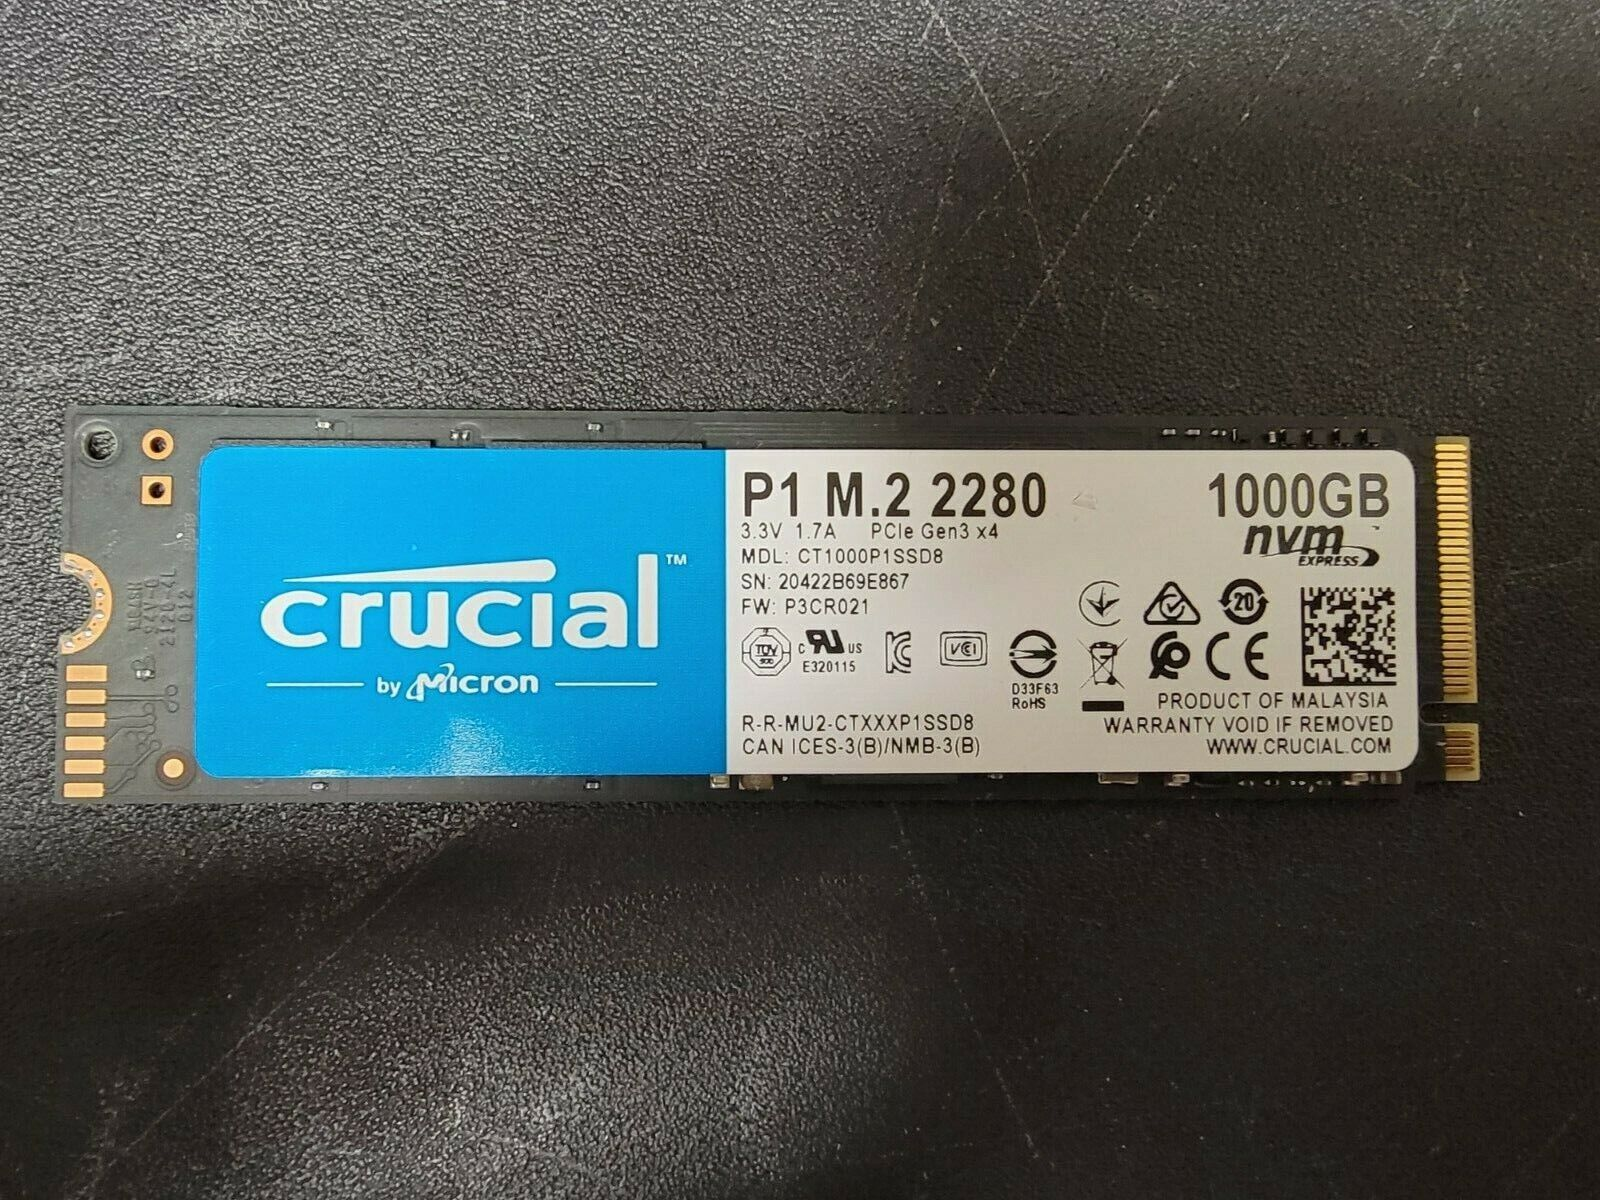 New Crucial - P2 1TB 3D NAND NVMe PCIe M.2 Solid State Drive. Buy it now for 99.99